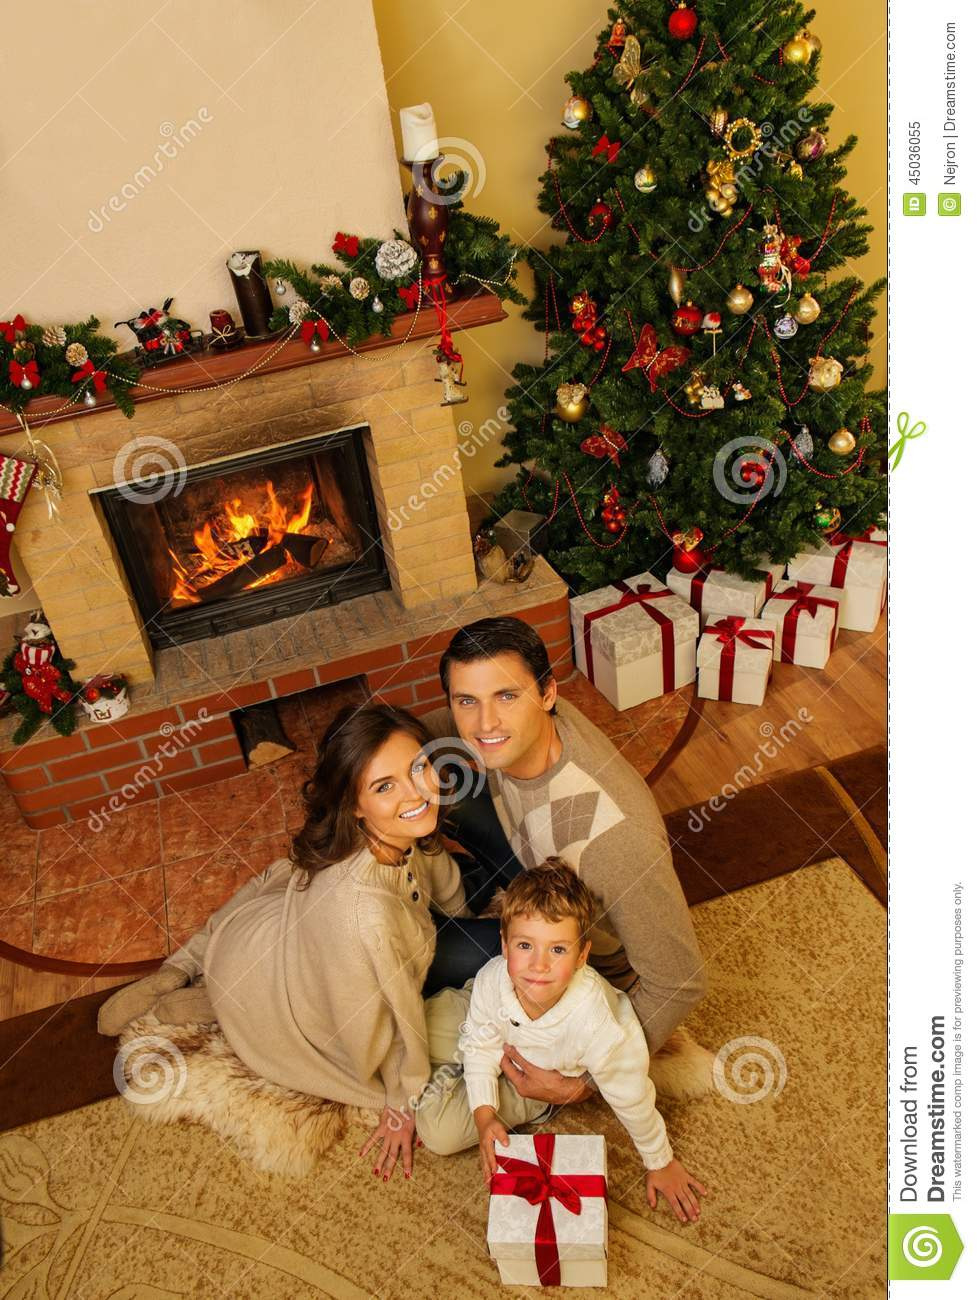 Famille dans l 39 int rieur de maison de no l photo stock for Decoration noel interieur maison